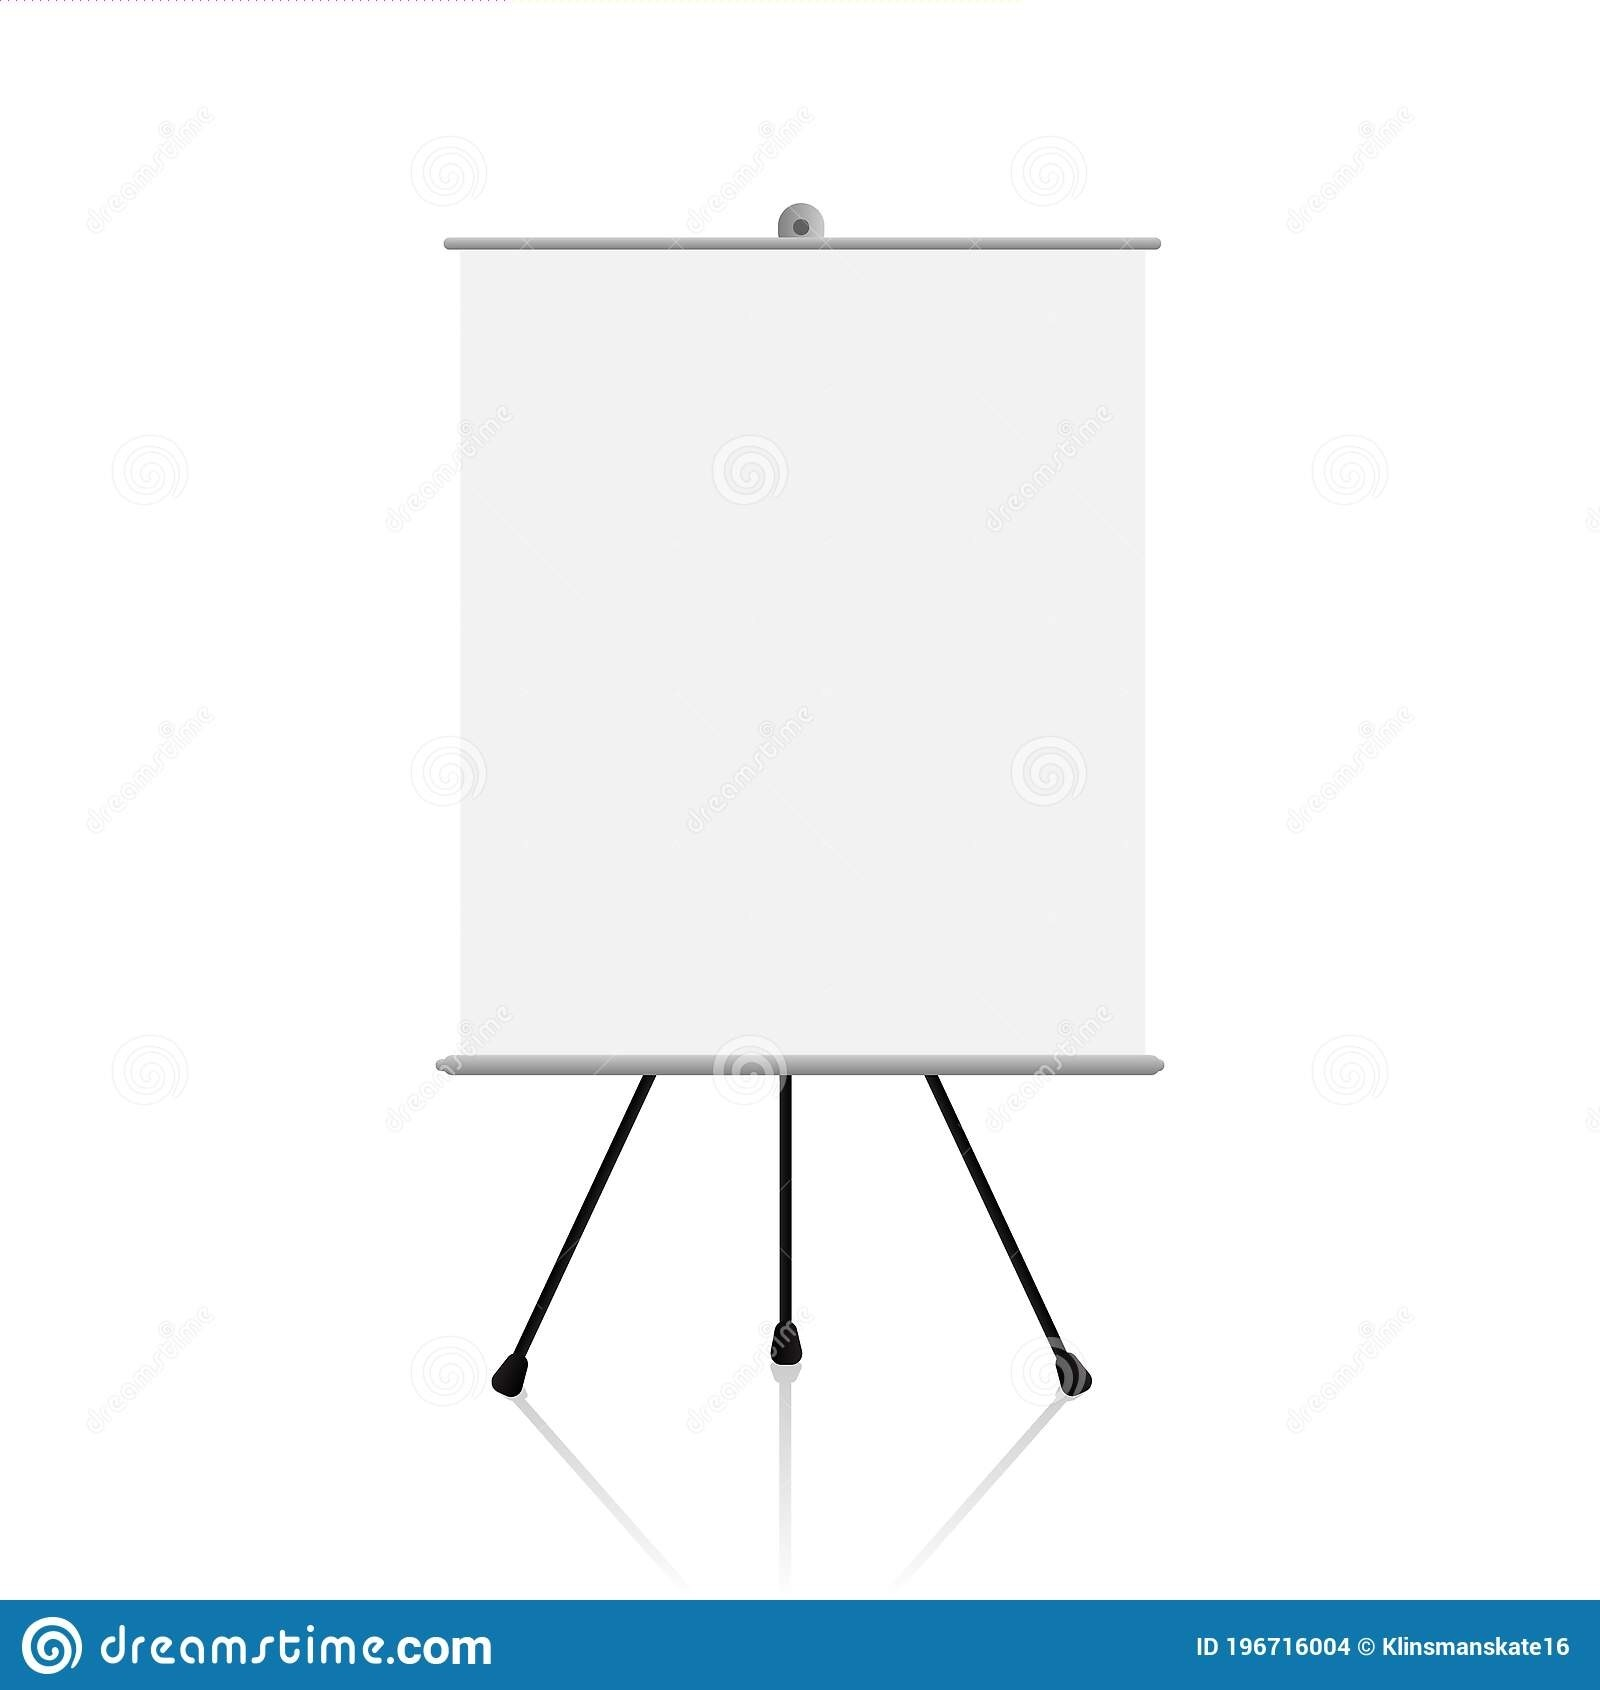 Realistic Blank And Empty Flip Chart Mockup Design Template  Flip Chart Template